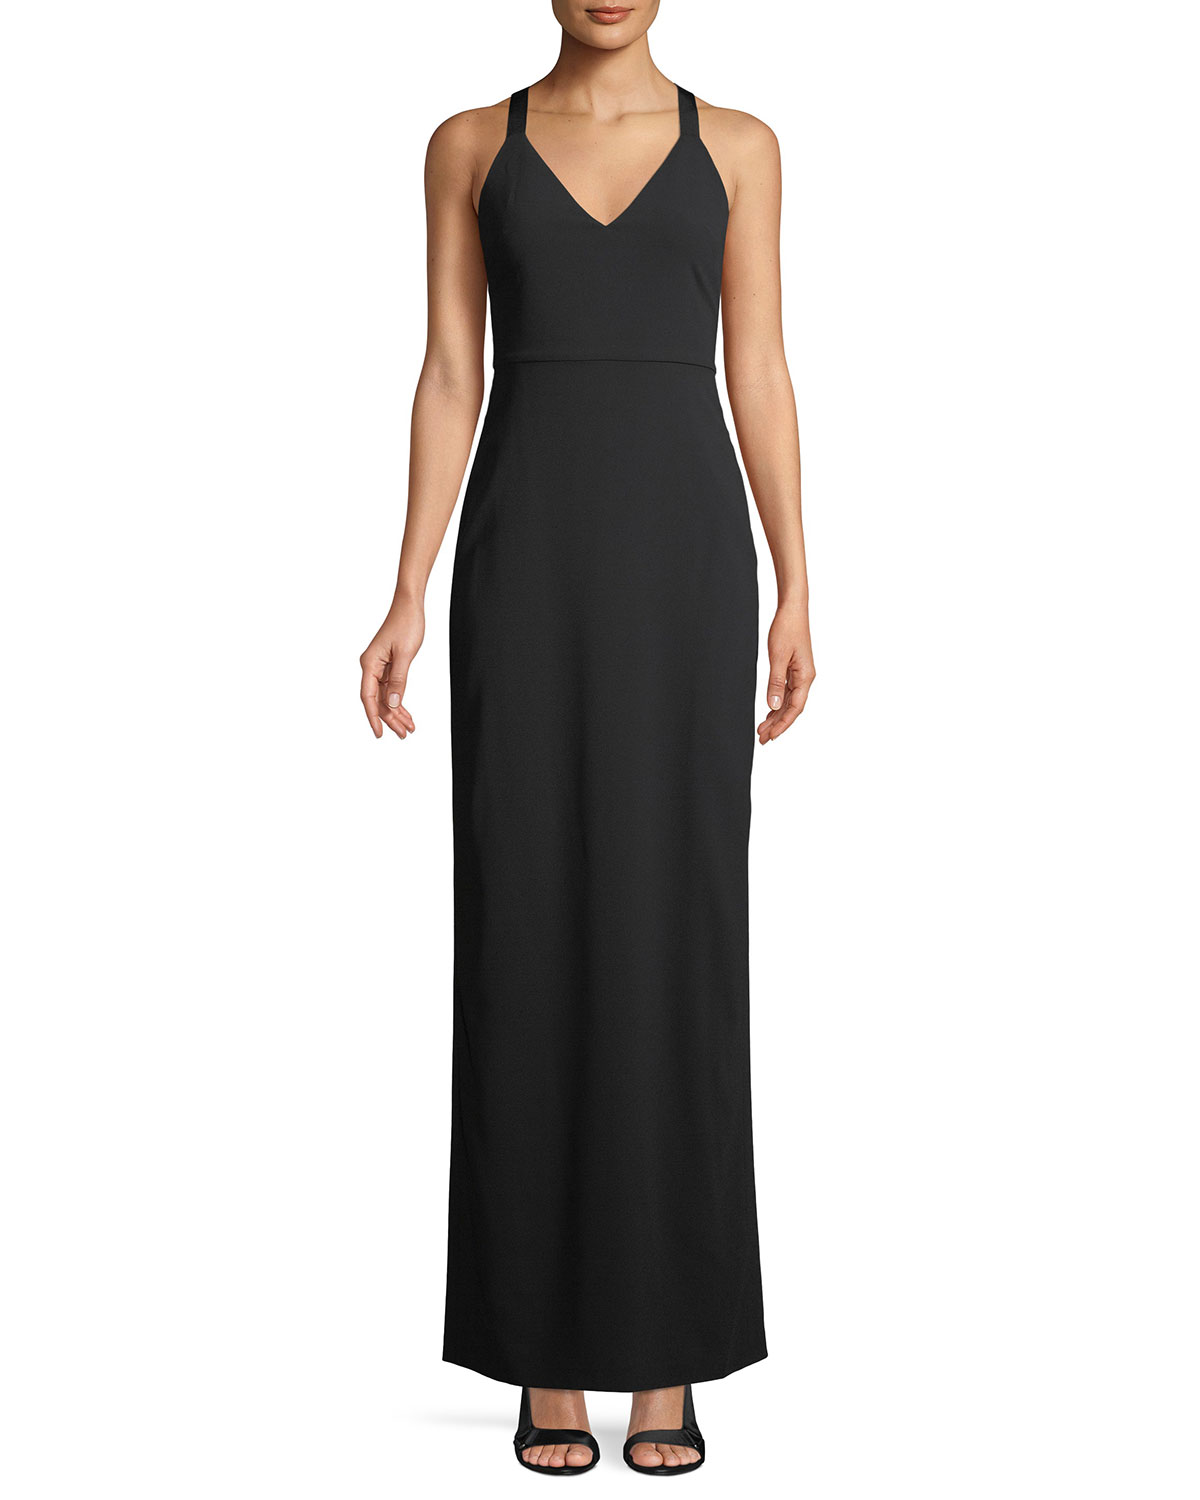 Brianna Sleeveless Side Ruched Satin Maxi Dress